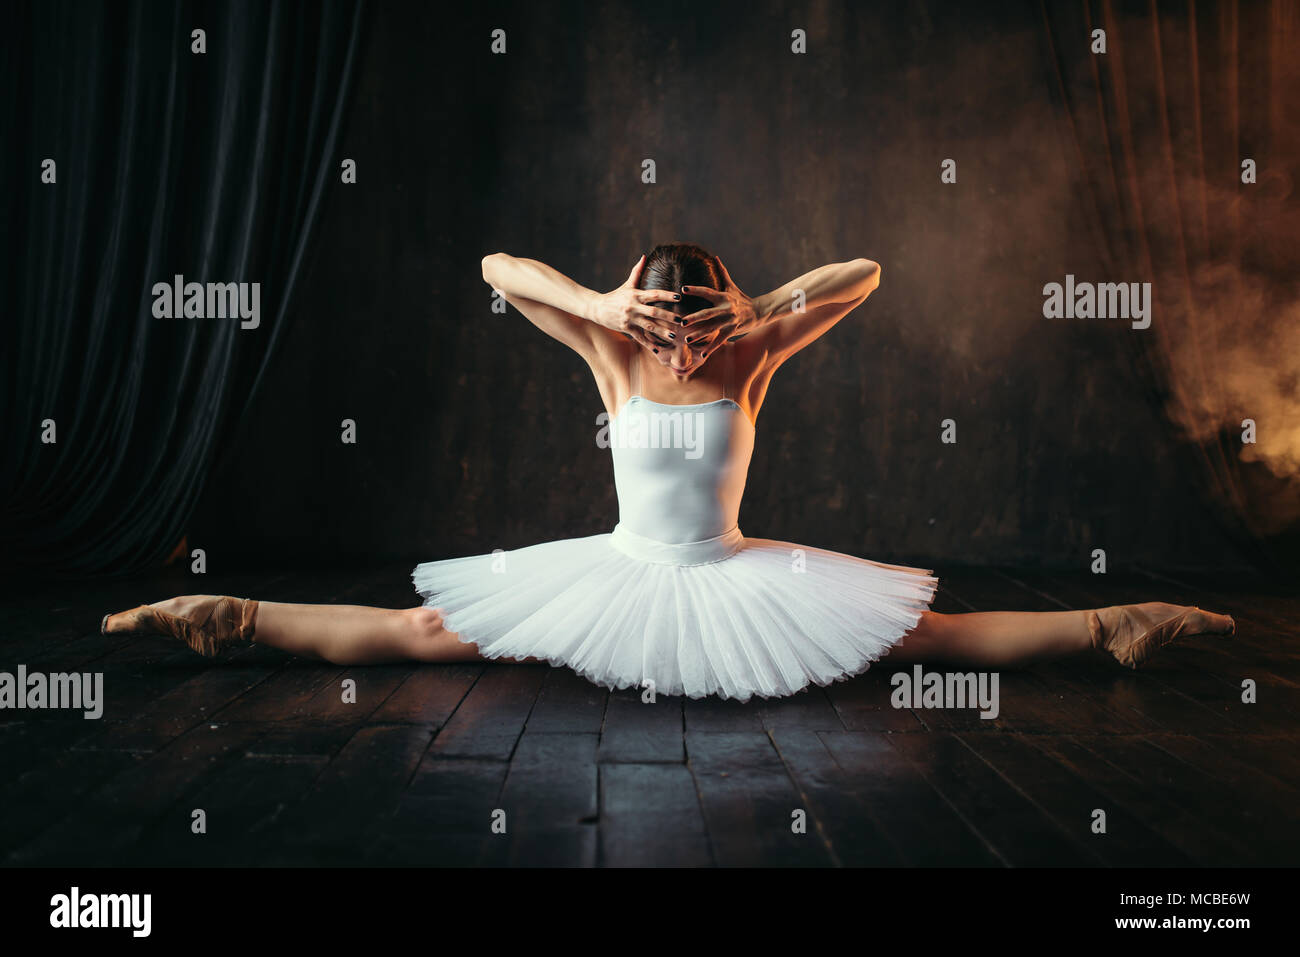 Body flexibility of ballet performer, stretching - Stock Image